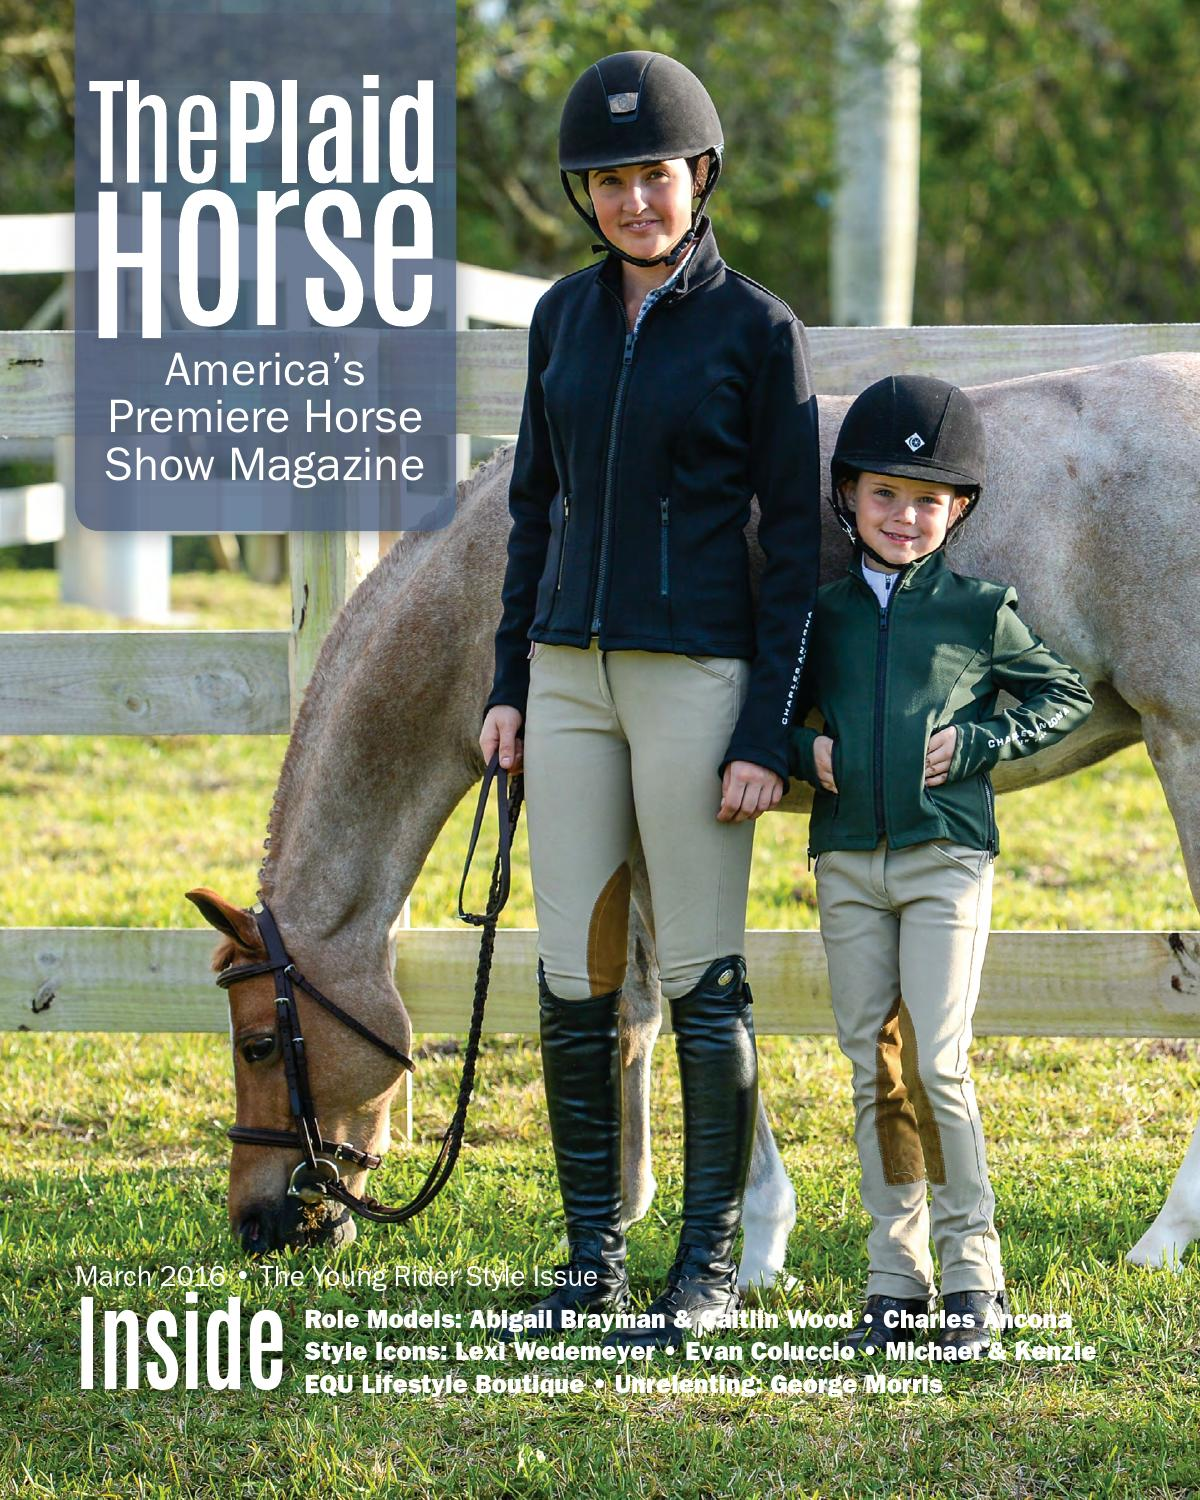 The Plaid Horse March 2016 The Young Rider Style Issue By The Plaid Horse Issuu